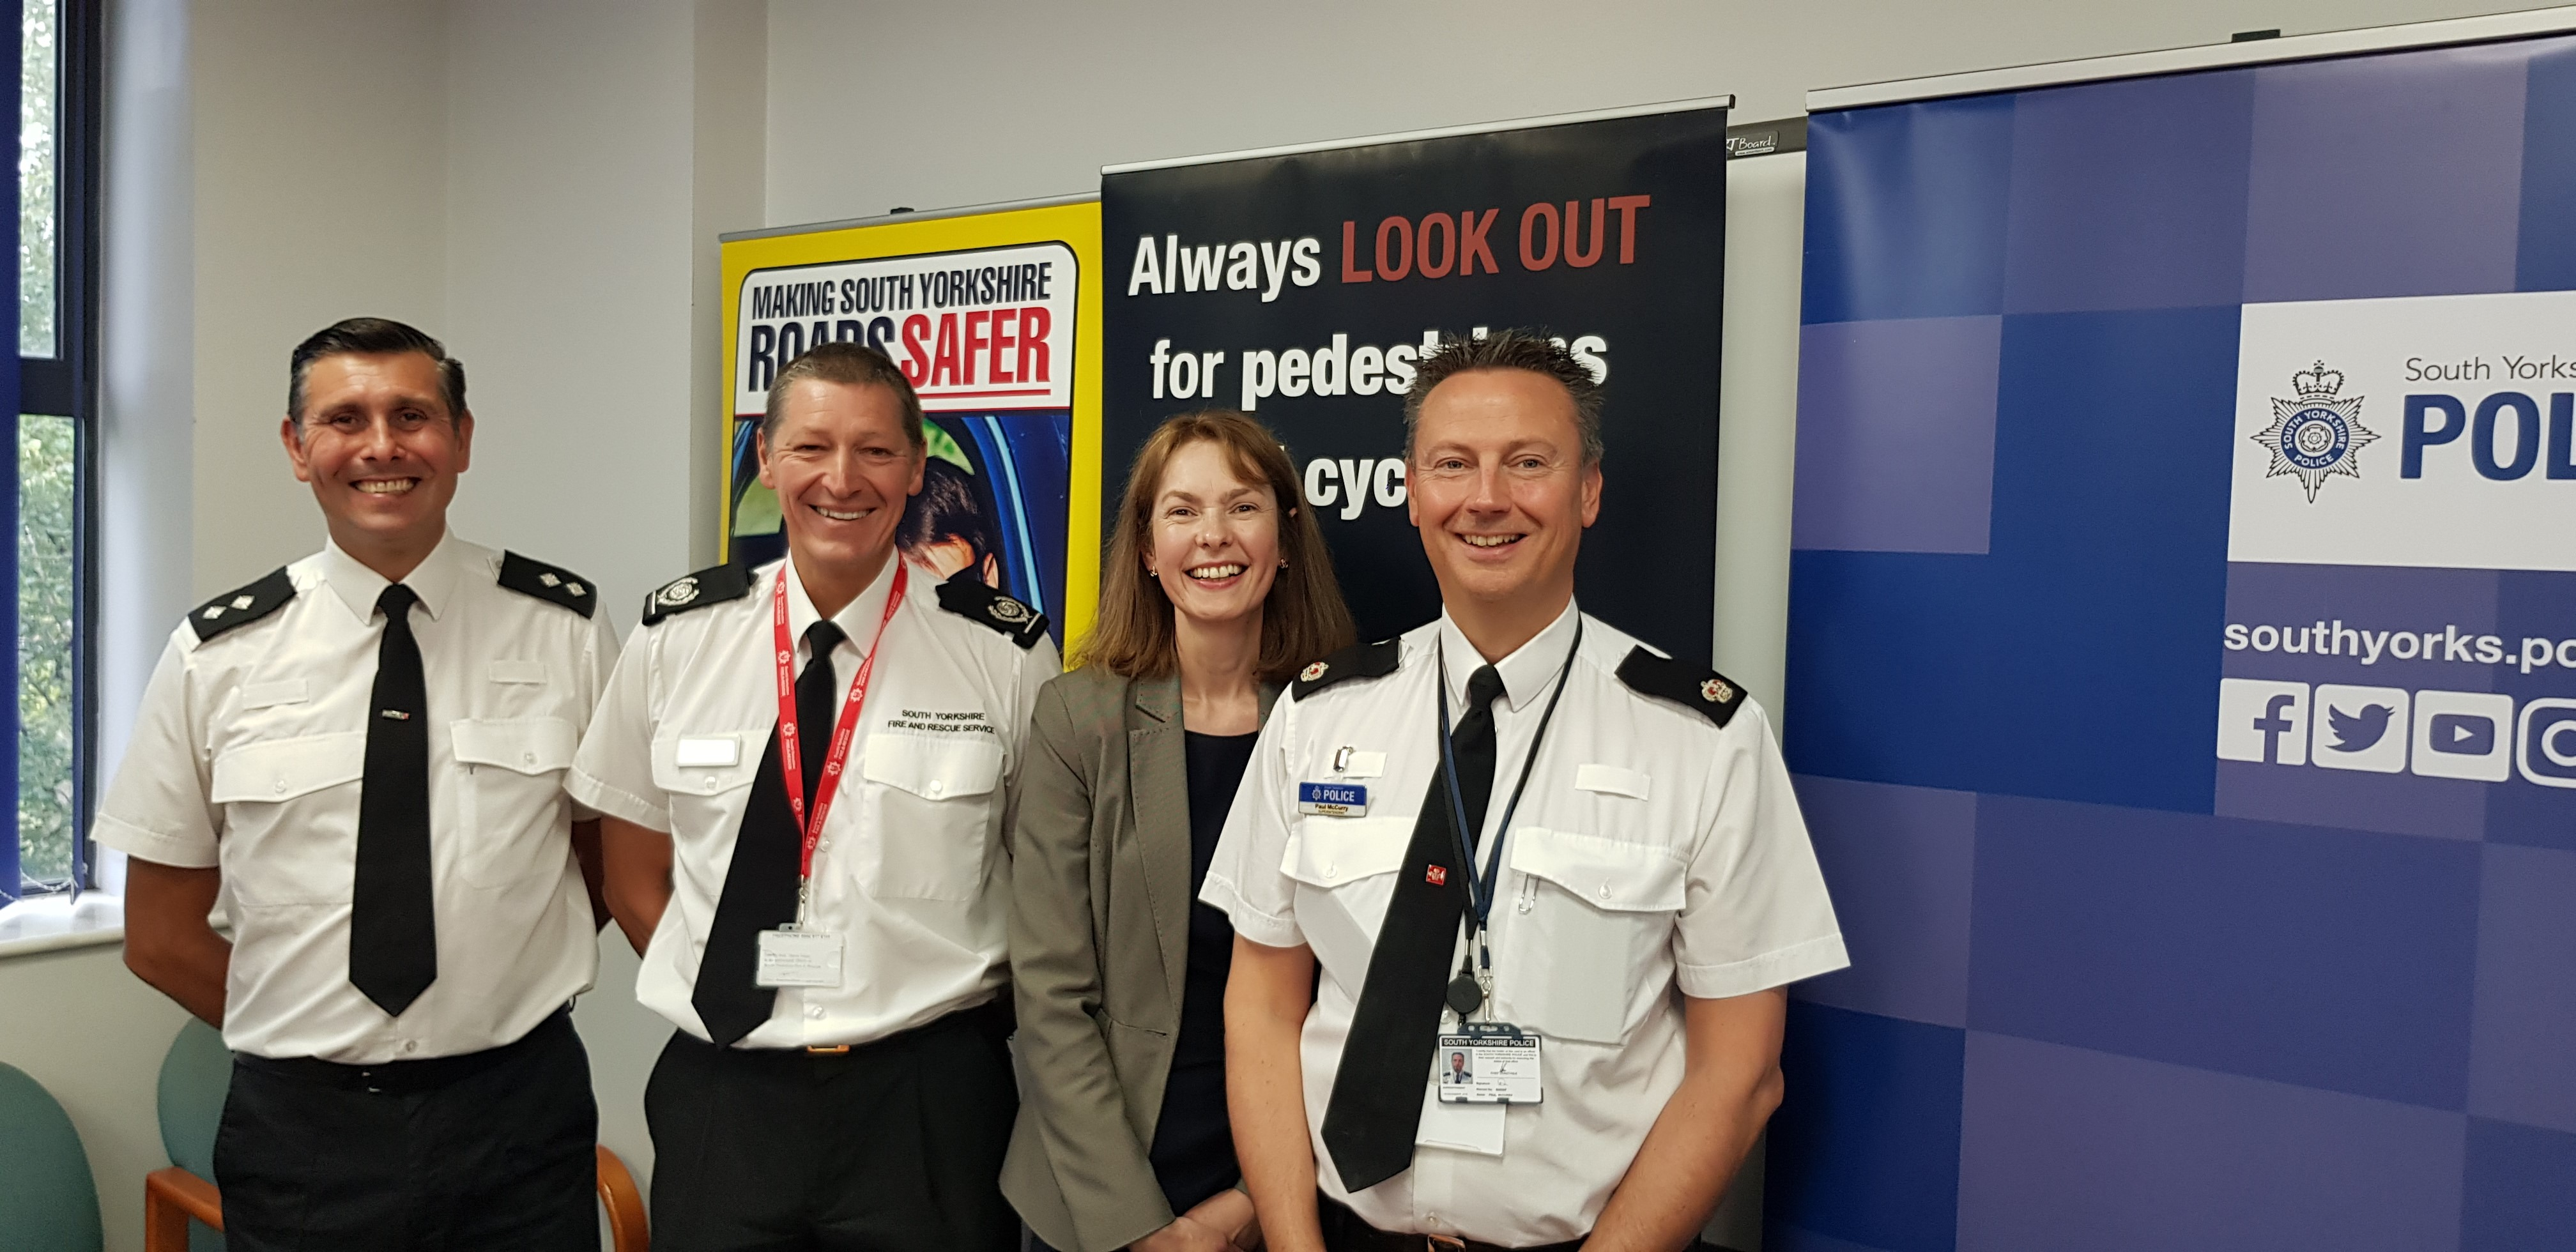 Left to right- Inspector Jason Booth, Steve Helps South Yorkshire Fire and Rescue Service, Joanne Wehrle,-manager of South Yorkshire Safer Roads Partnership and Superintendent Paul McCurry